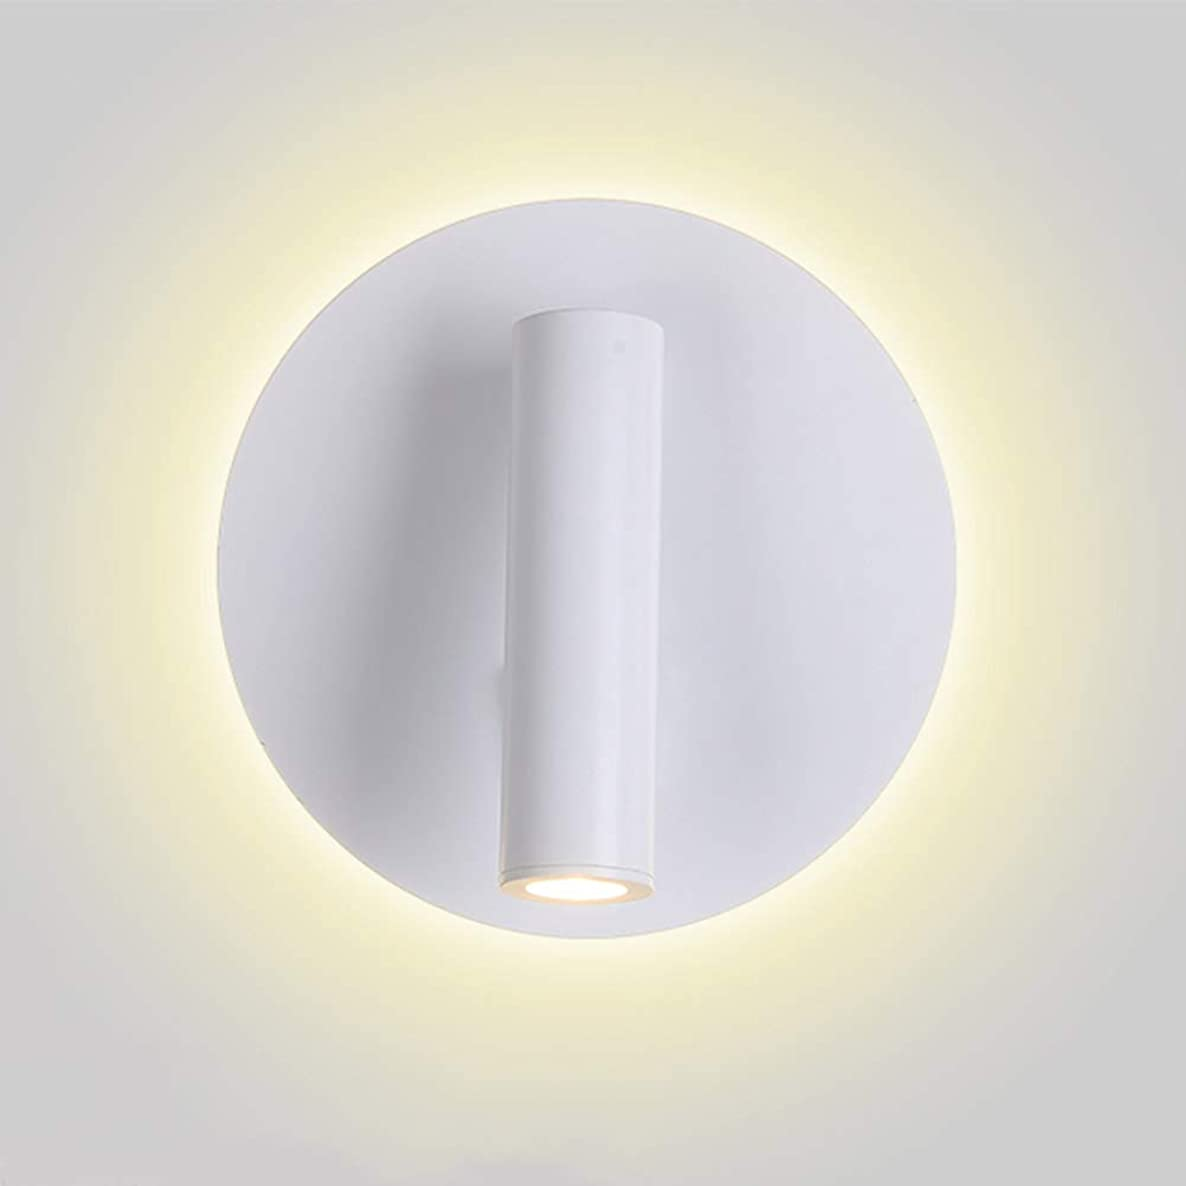 TopDeng Adjustable Angle with on Off Switch LED Reading Light, Hardwired Metal Wall lamp, Creative Bedroom Study Room Wall Lights Warm White 6w-Round-White Diameter14cm